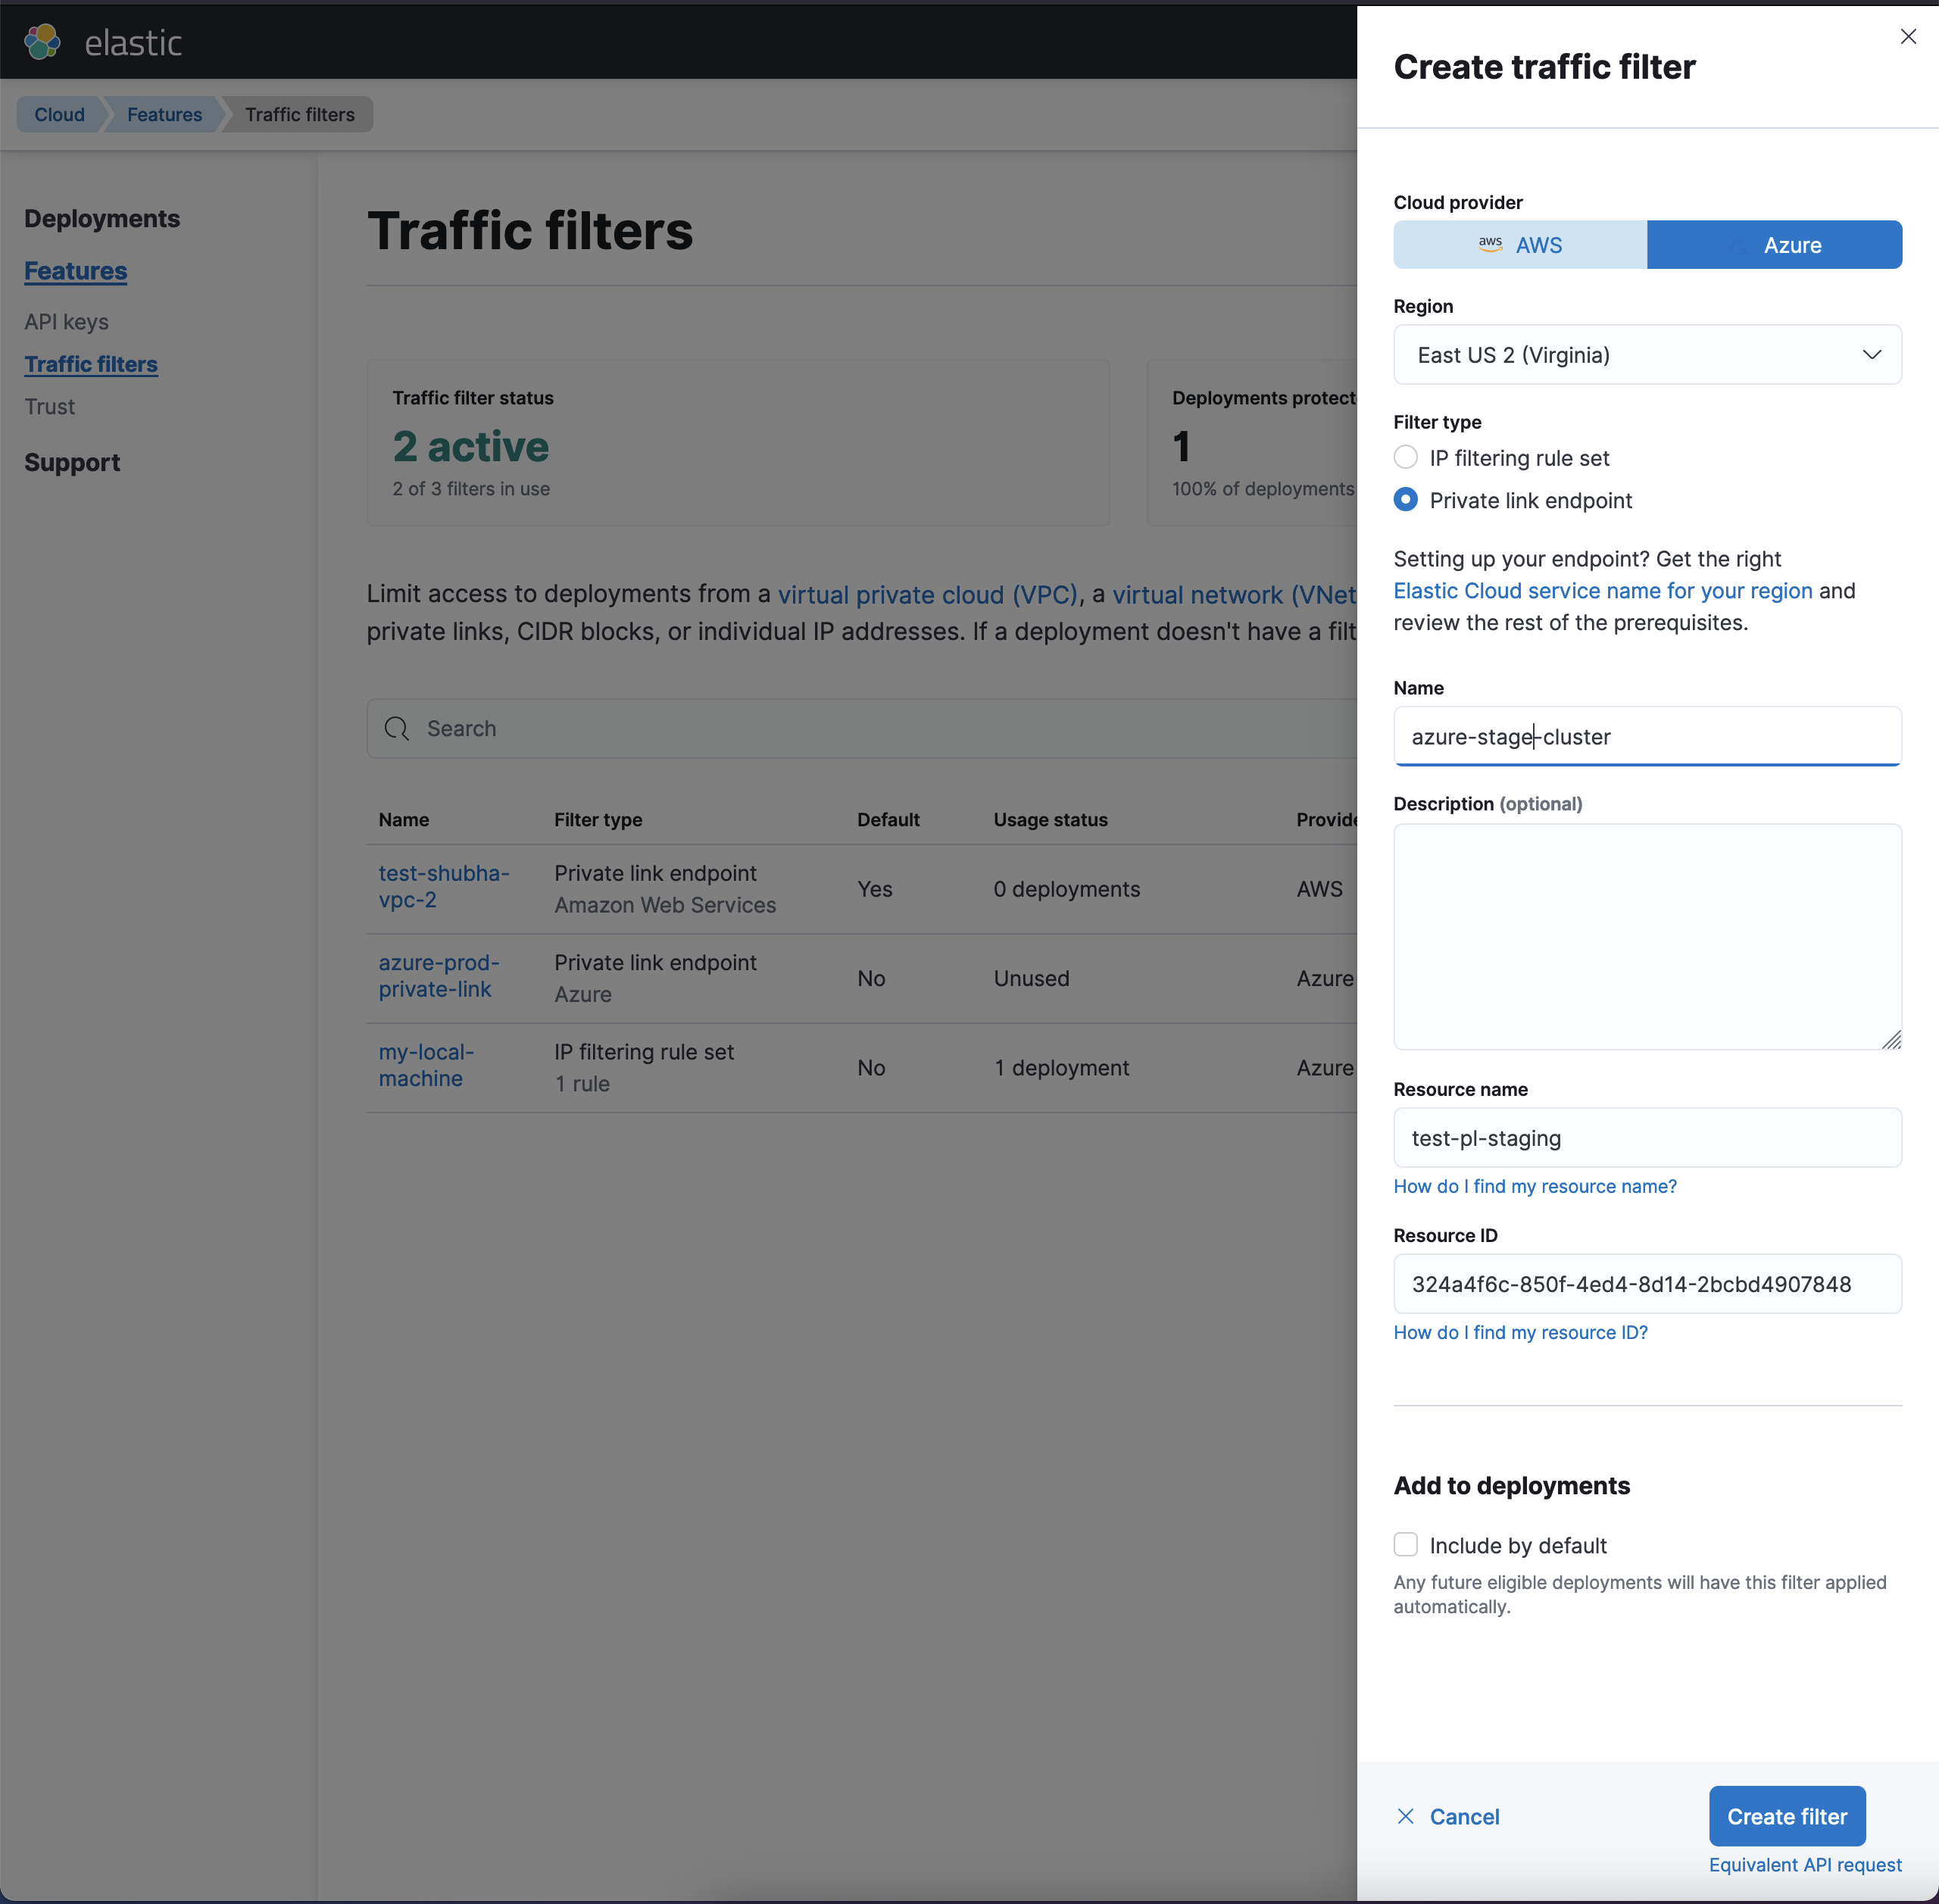 blog-azure-private-link-create-traffic-filter.png